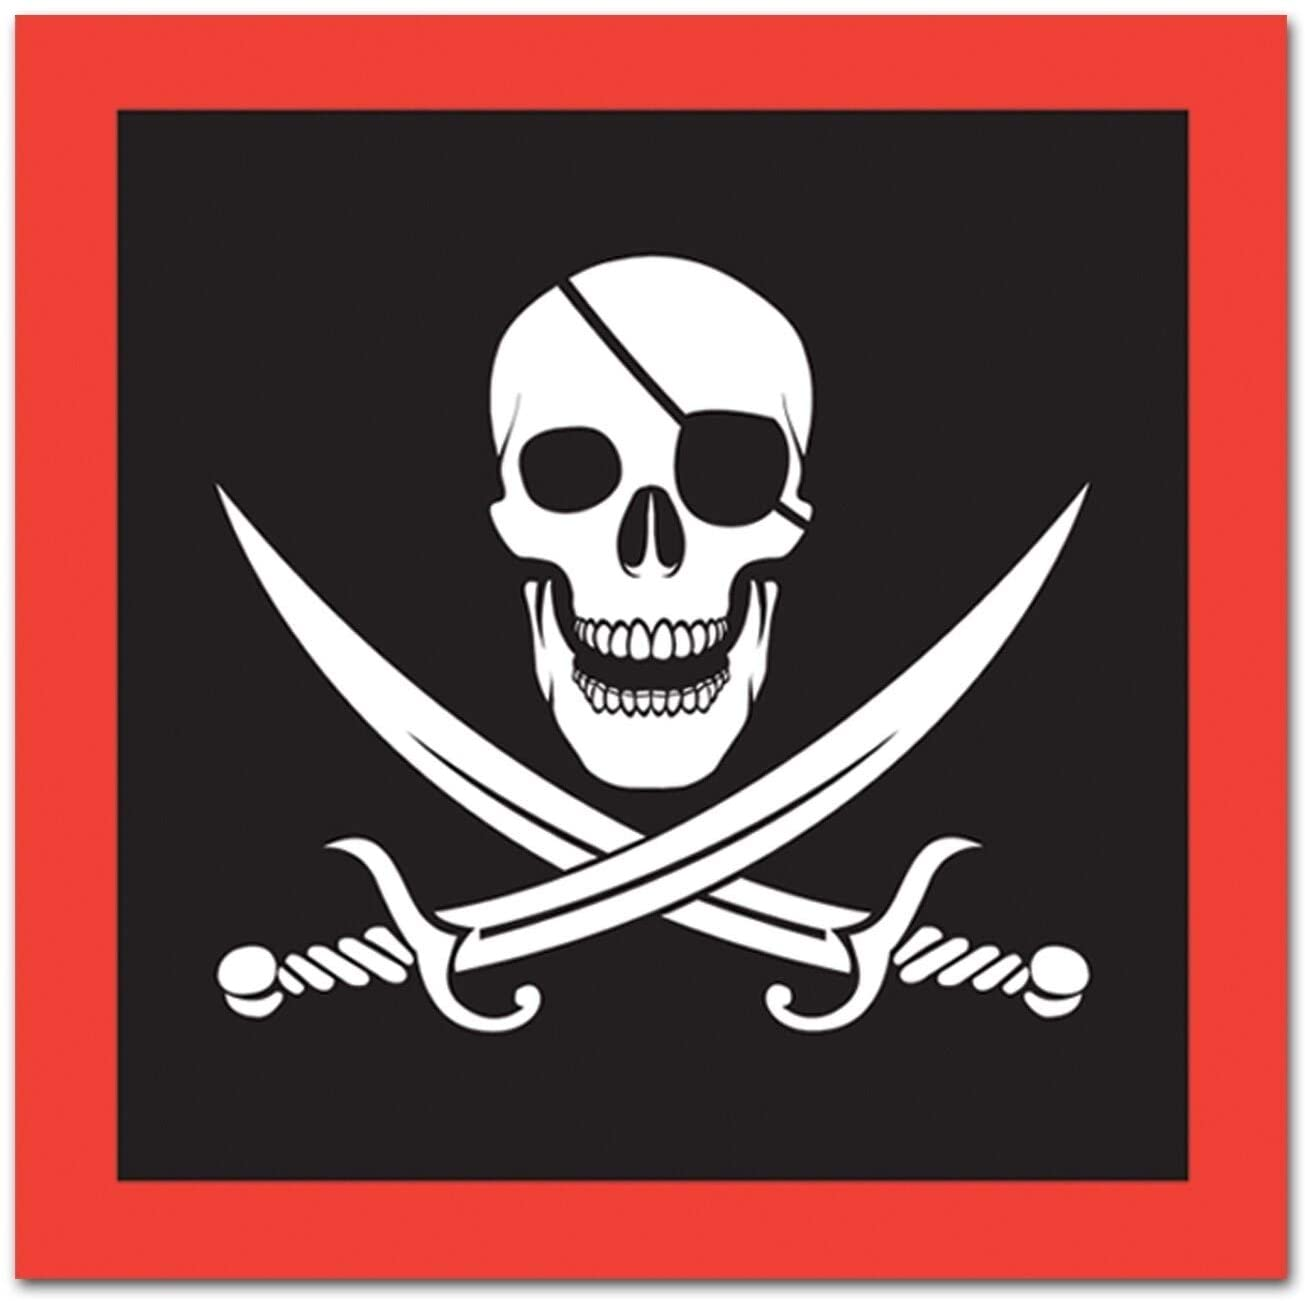 2 ply Pirate Theme Napkins 12 Pack (16/pkg) Black Red White Modern Contemporary Square Organic